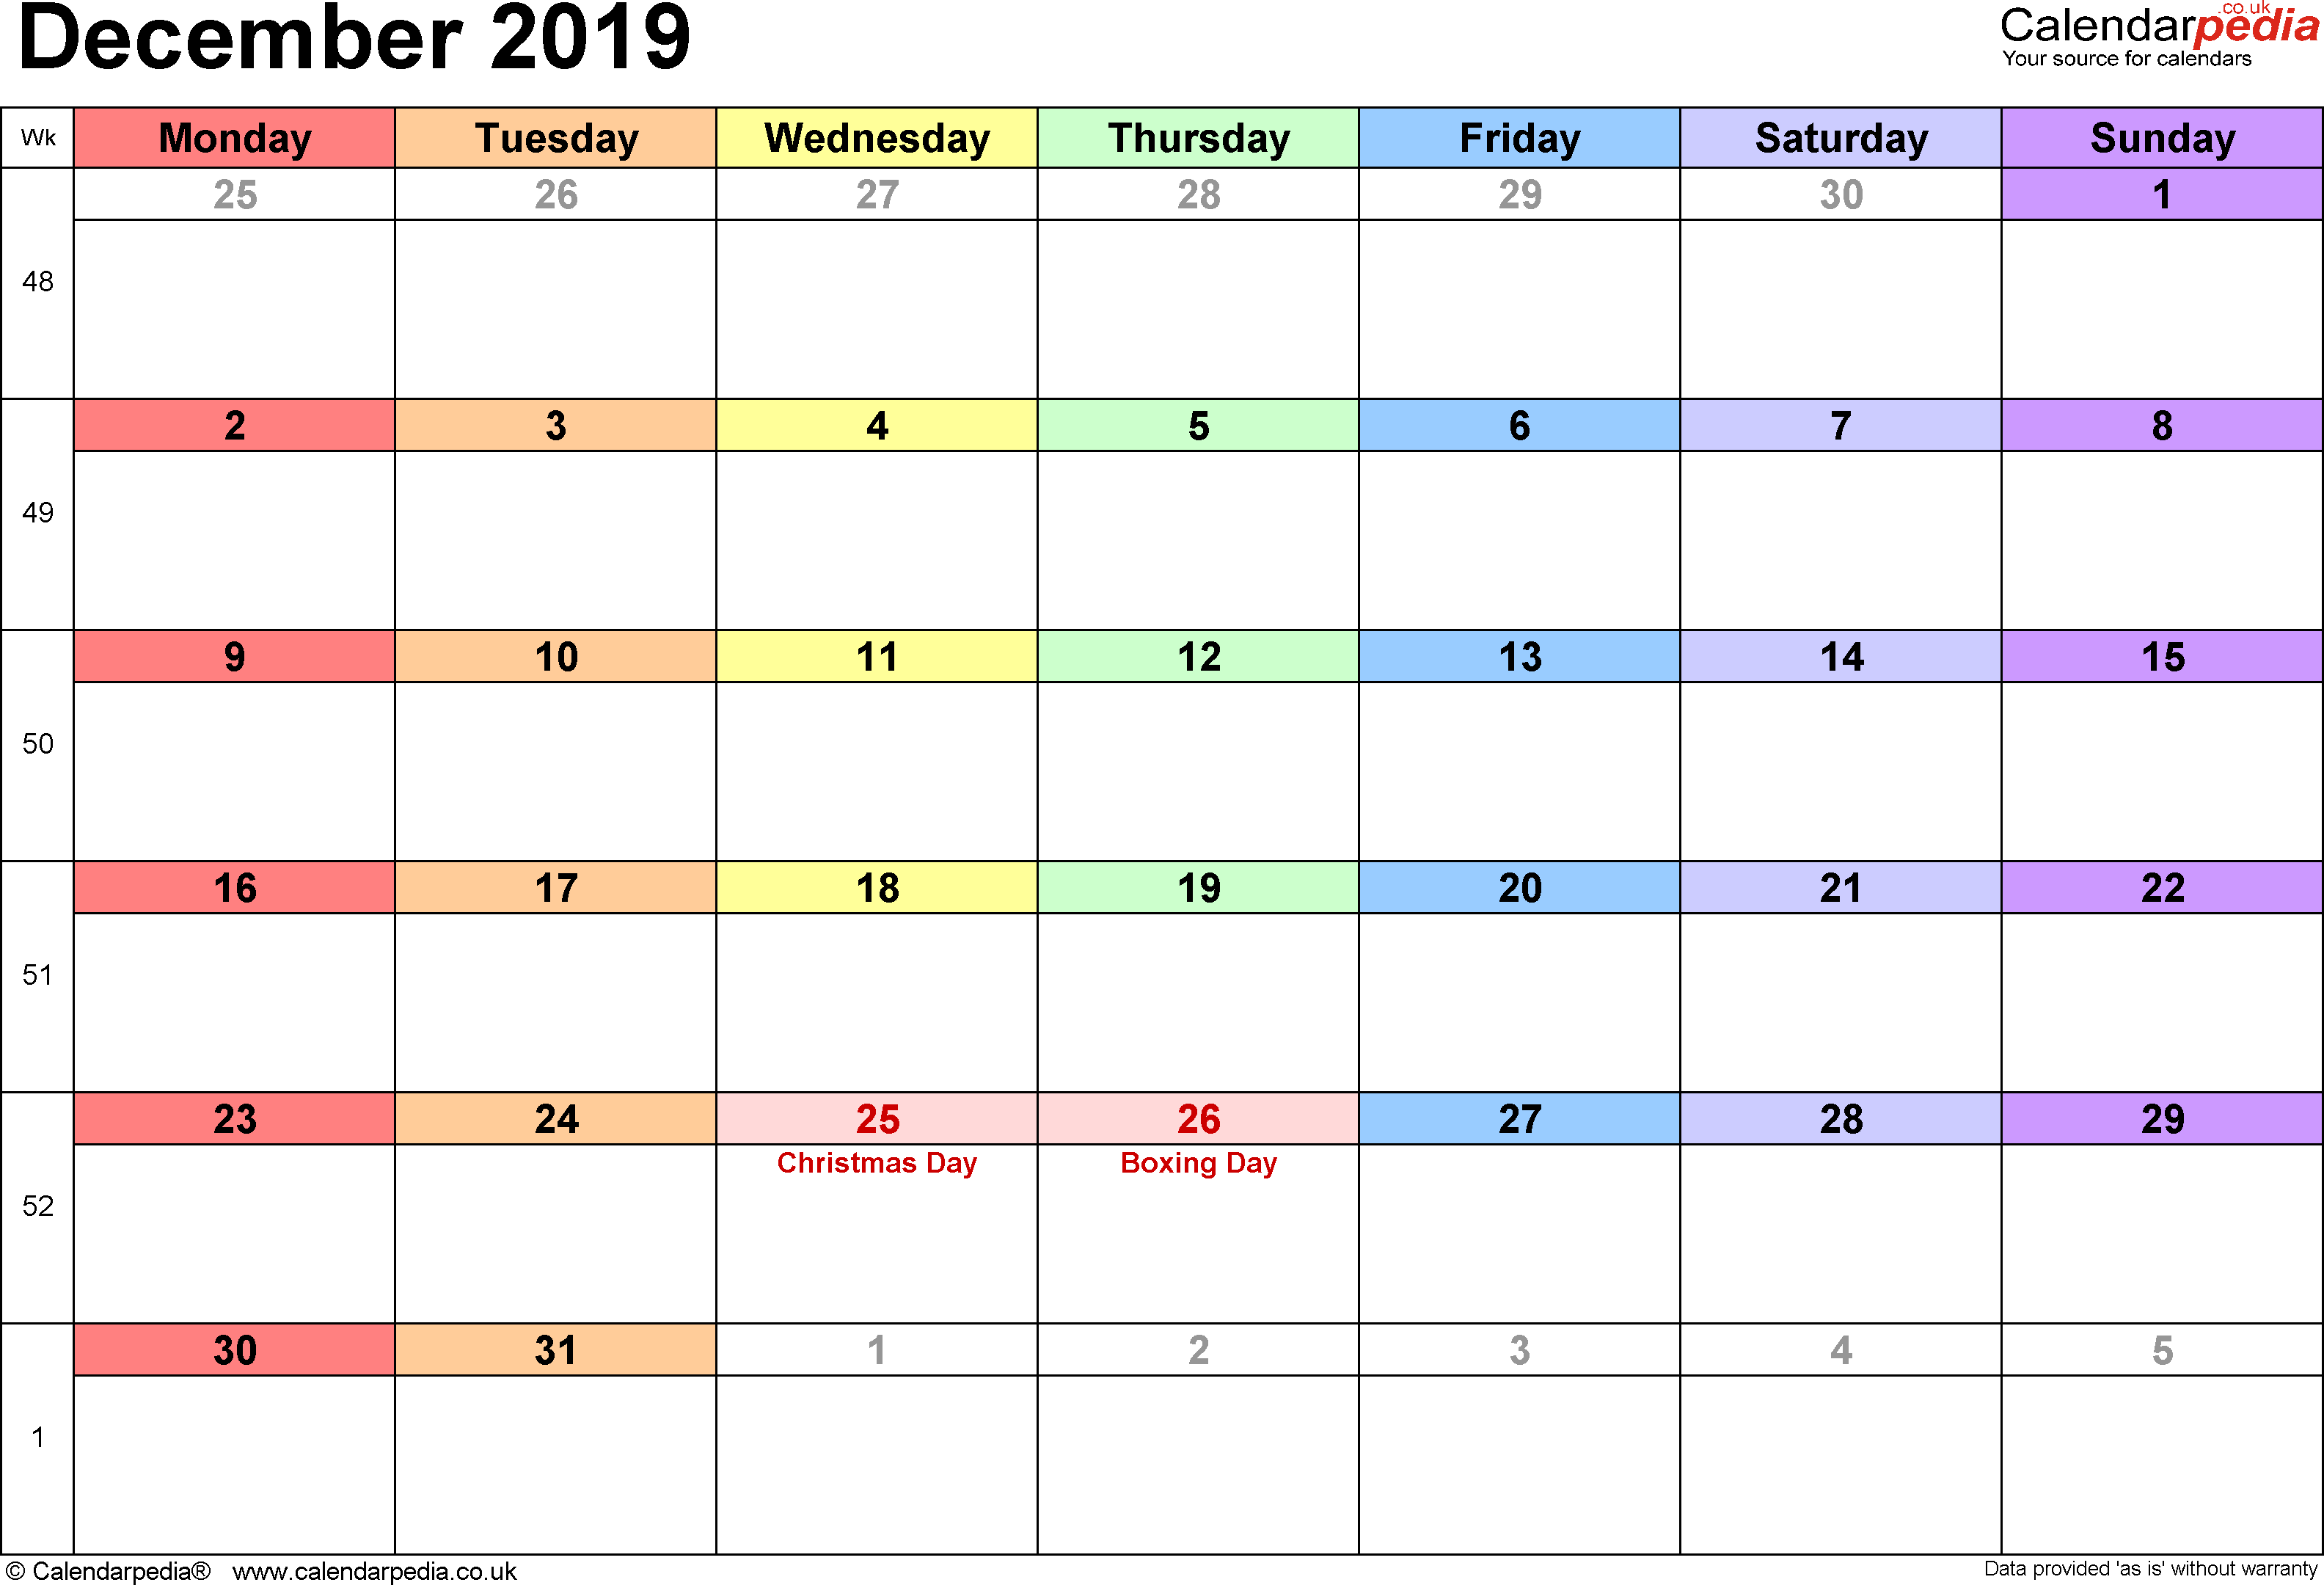 Calendar 2019 December Page Calendar December 2019 UK, Bank Holidays, Excel/PDF/Word Templates